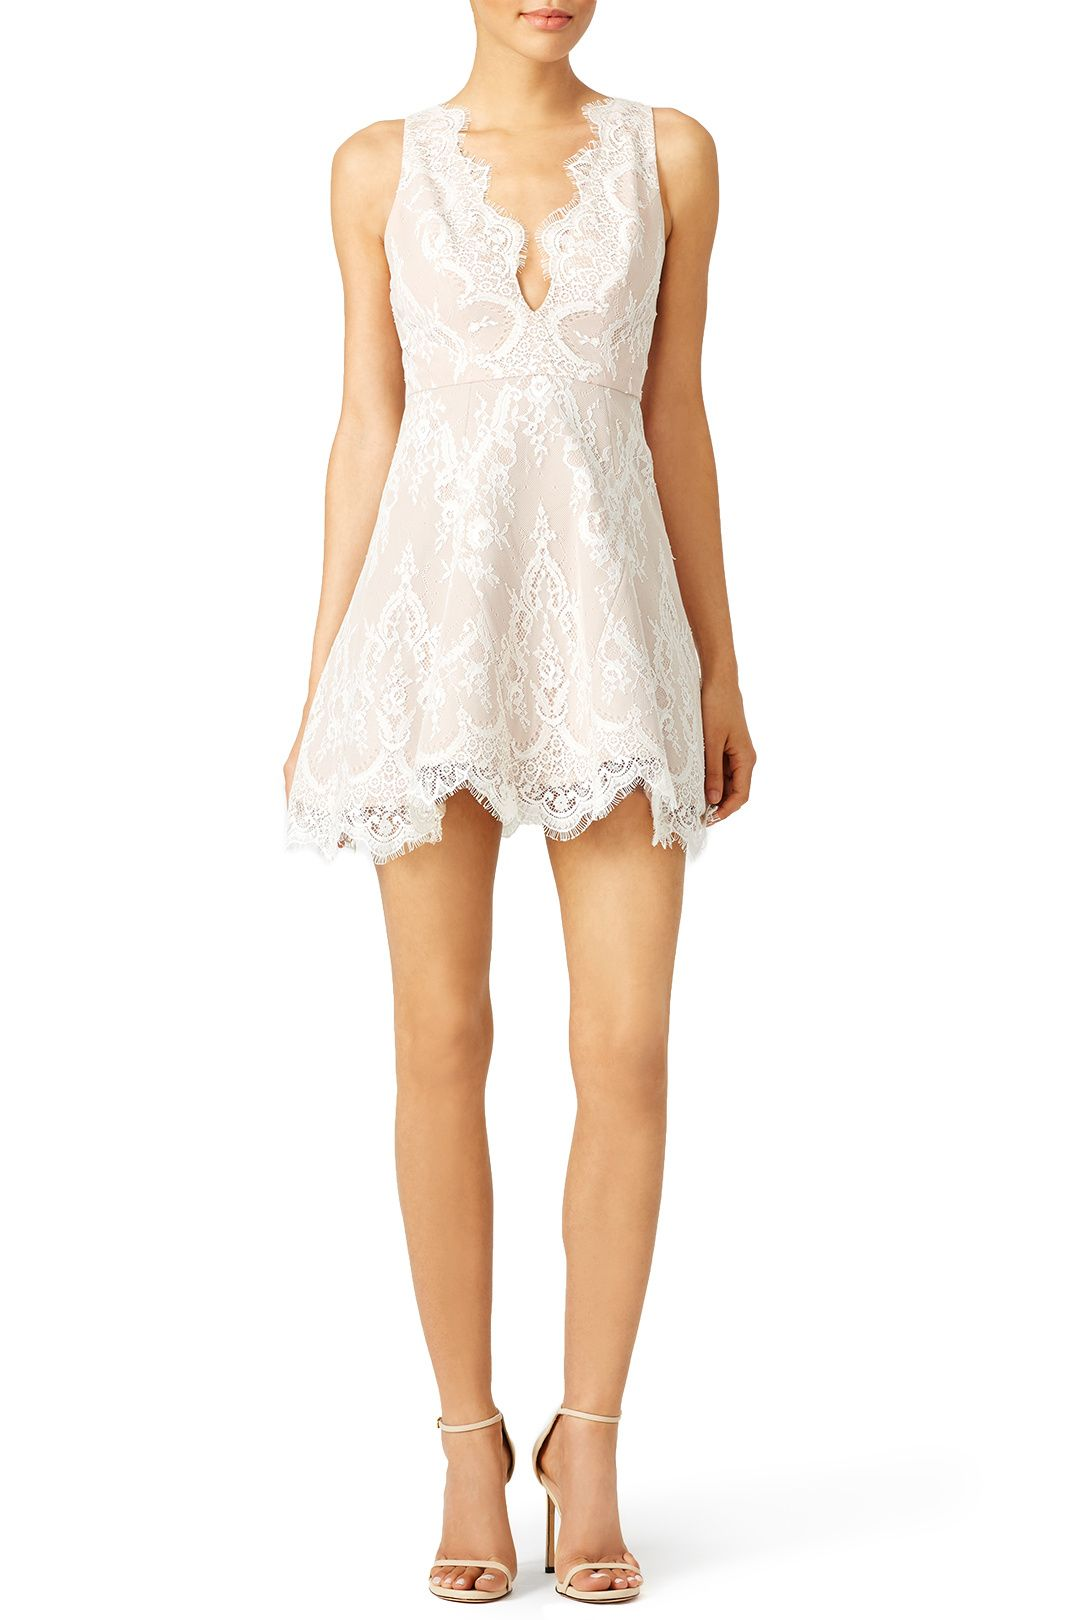 Ivory lace chandelier dress afterparty dress pinterest ivory